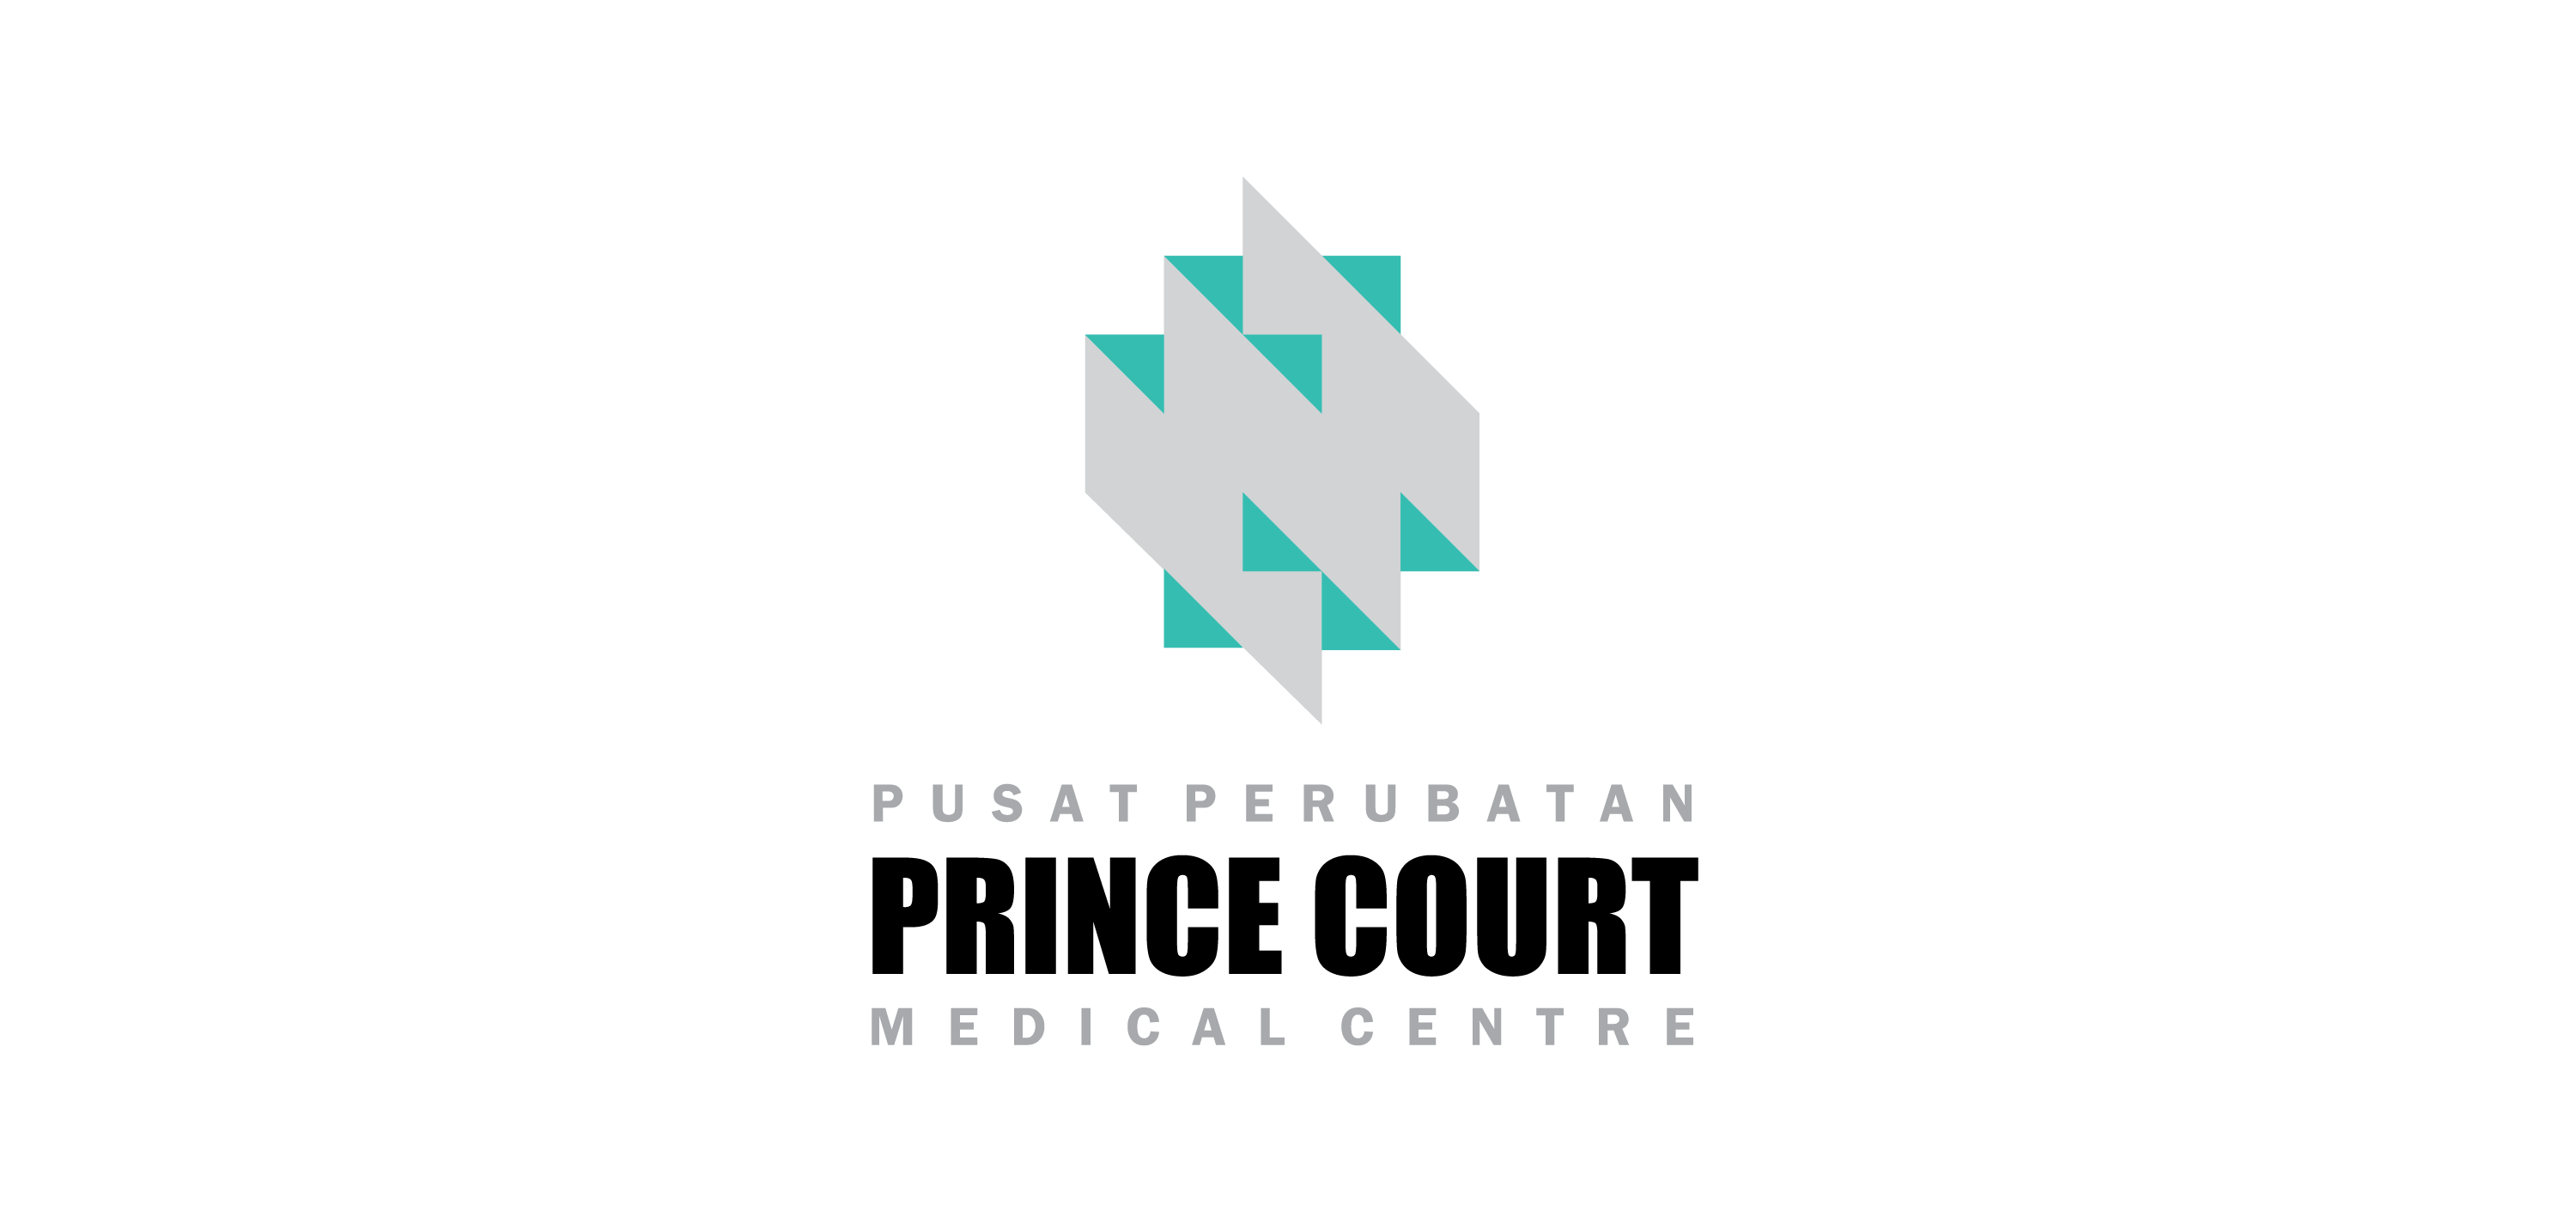 prince court medical centre logo